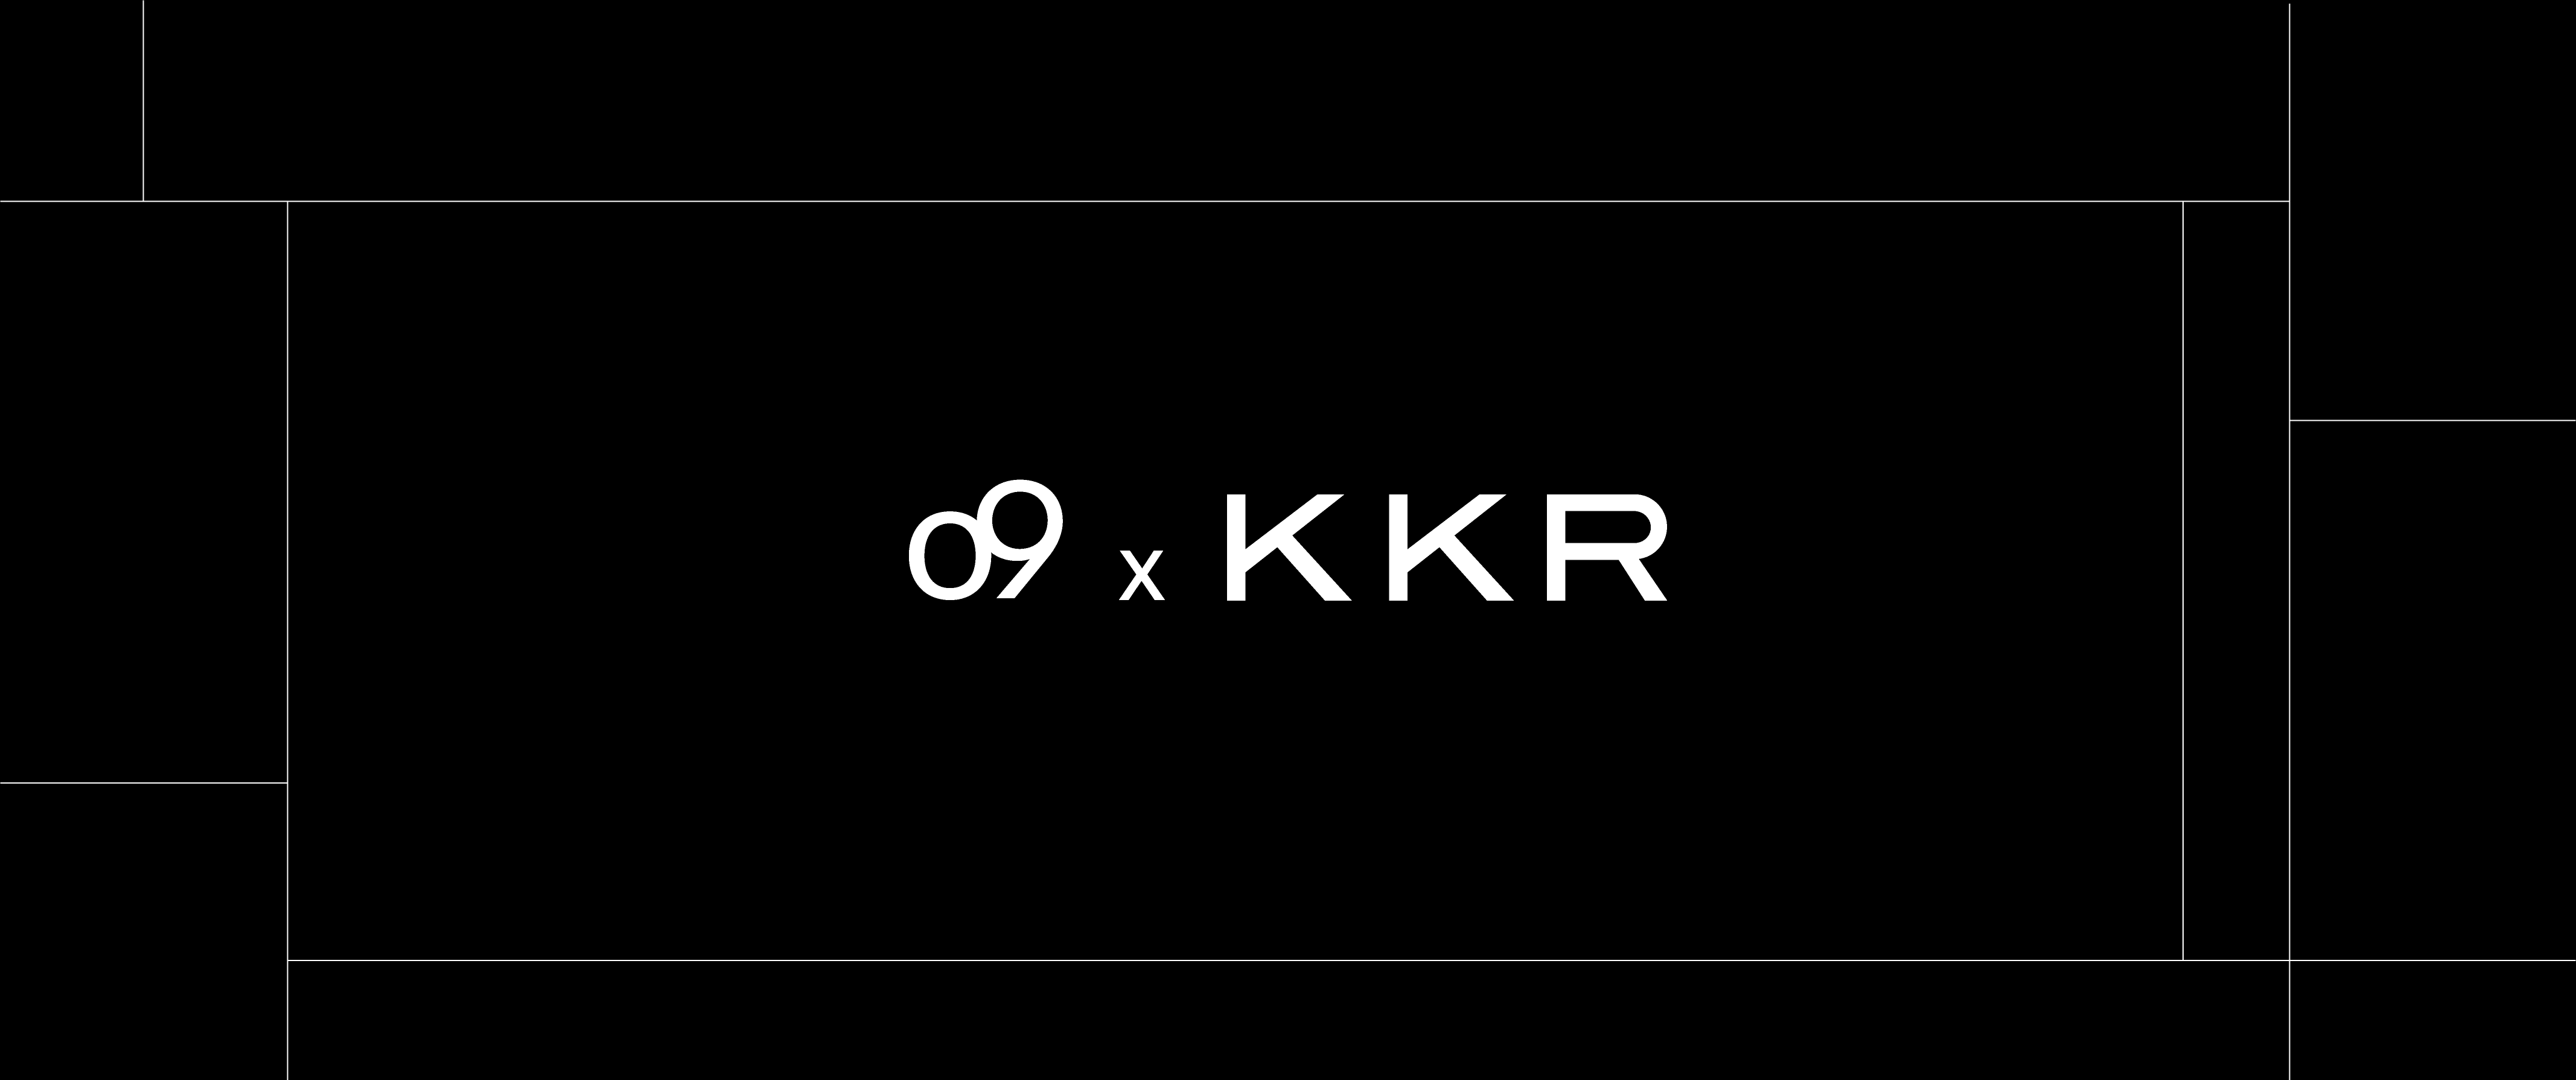 o9 Solutions announces investment from KKR